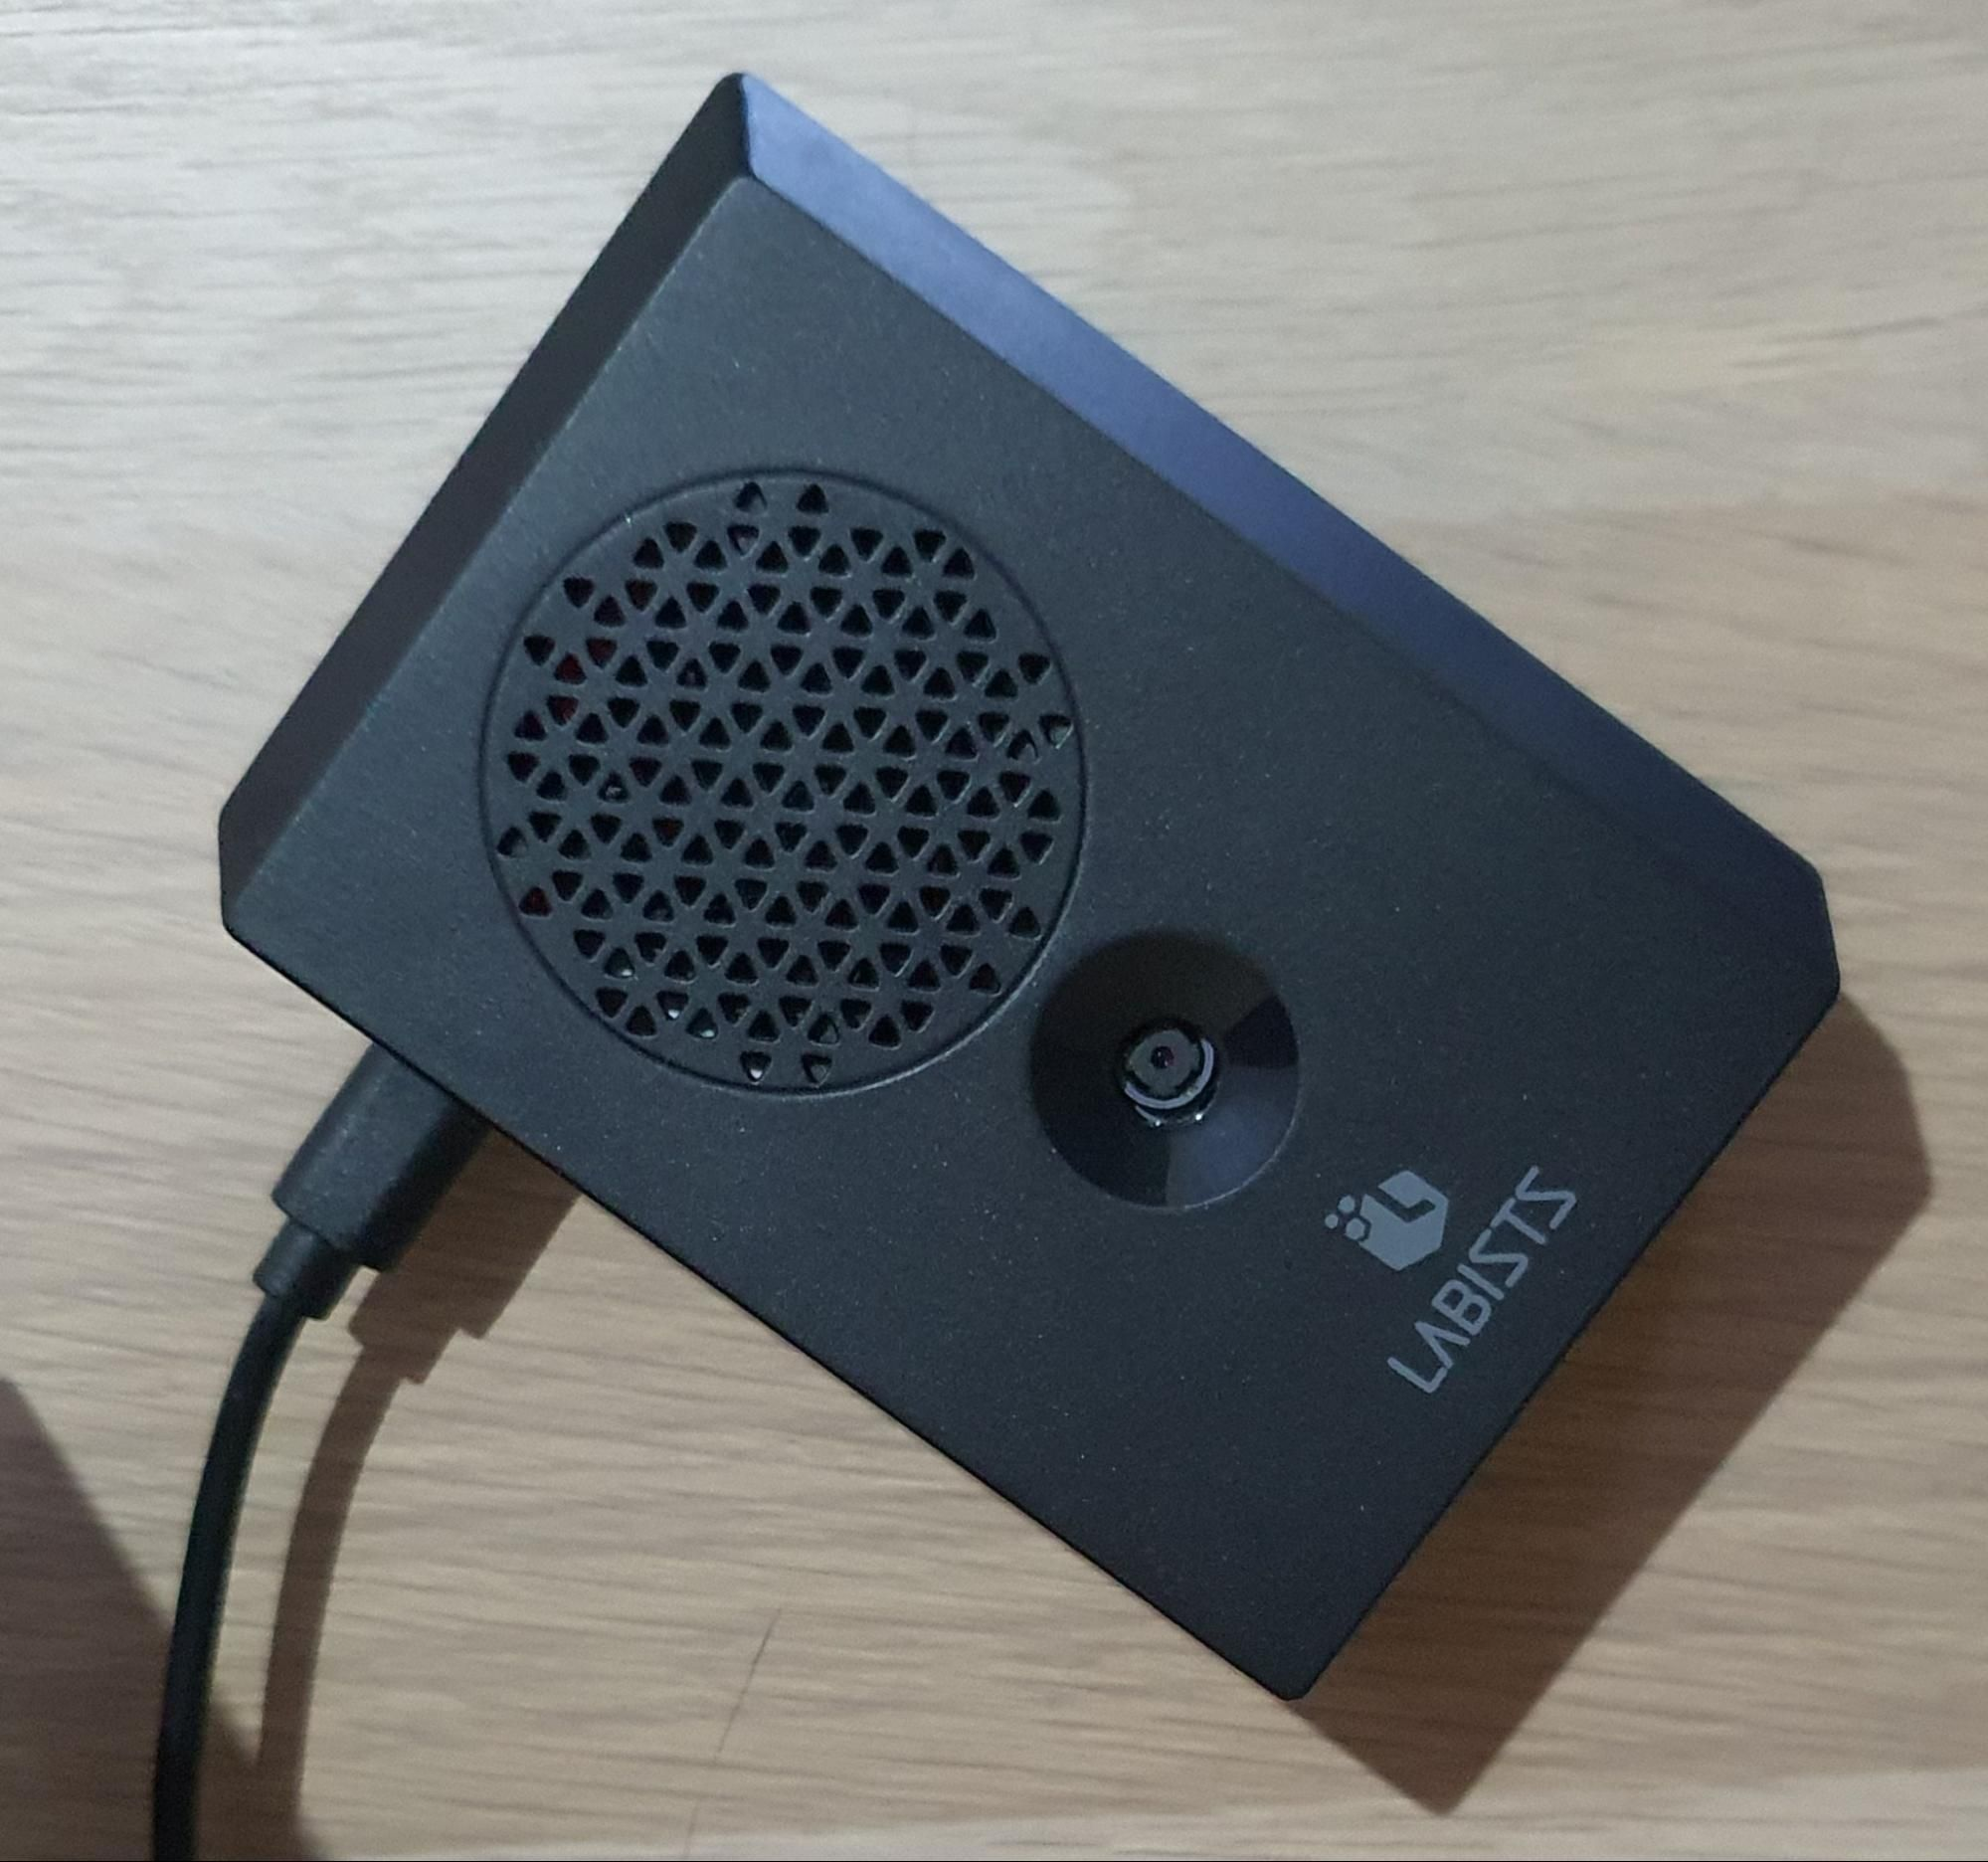 Building a Pet Cam using a Raspberry Pi, Cloudflare Tunnels and Teams